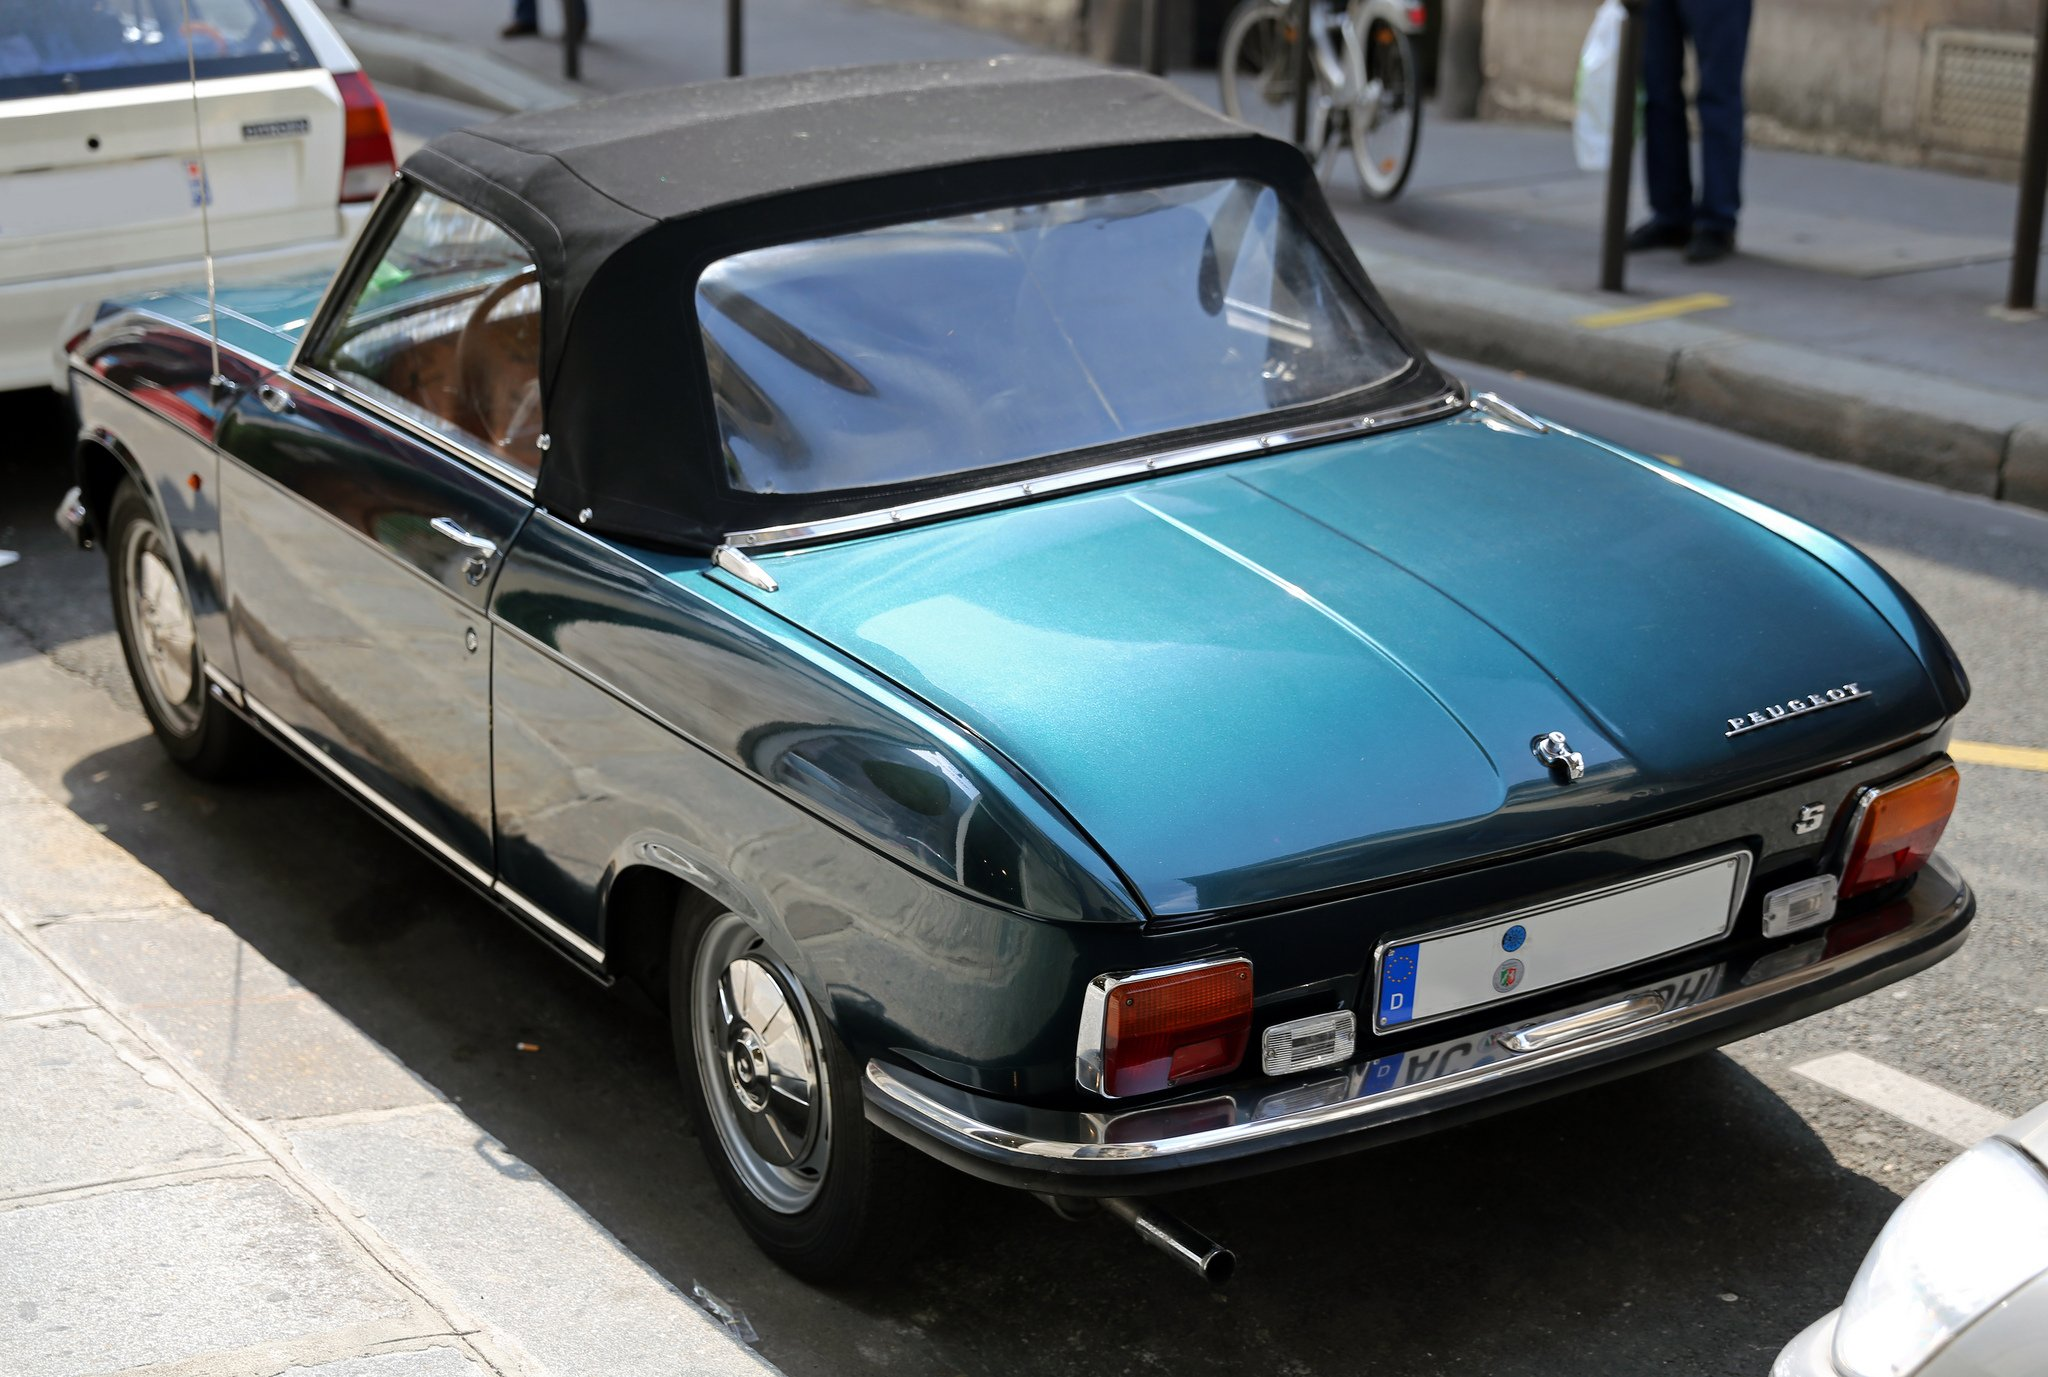 peugeot 304 cars classic french convertible cabriolet wallpaper 2048x1377 597910 wallpaperup. Black Bedroom Furniture Sets. Home Design Ideas